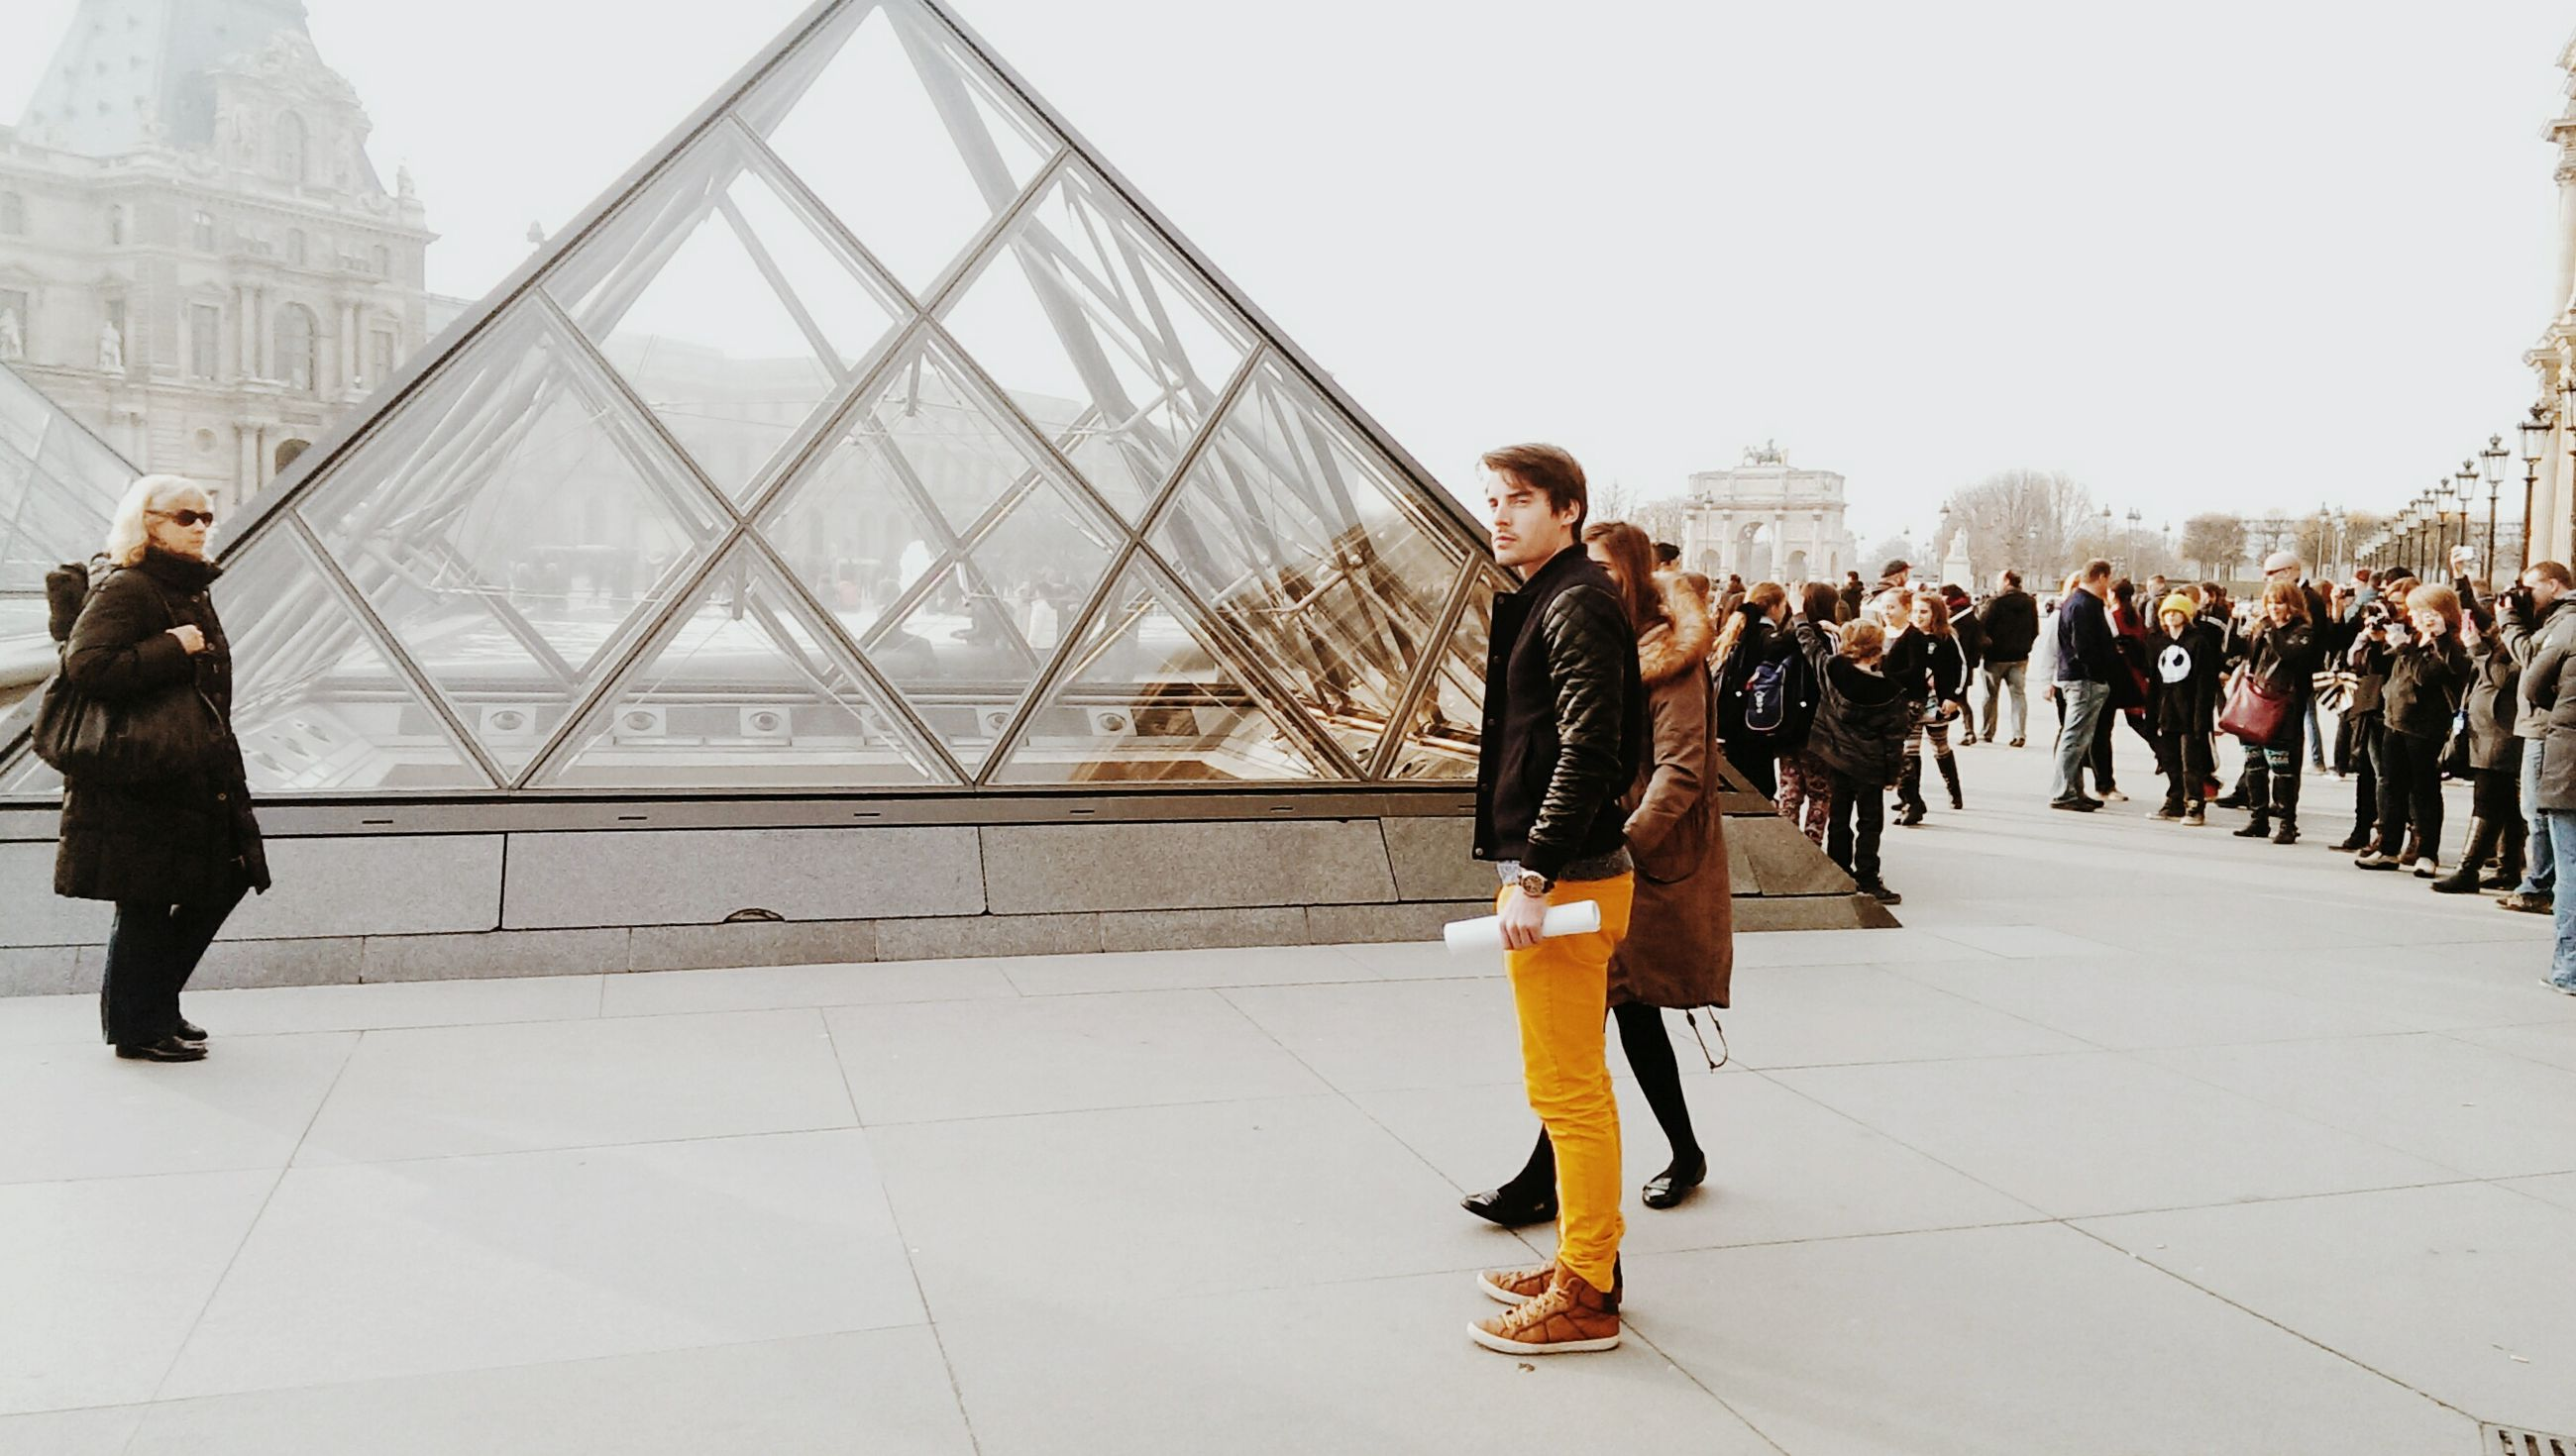 lifestyles, full length, person, architecture, leisure activity, built structure, casual clothing, men, standing, walking, city life, city, large group of people, rear view, travel, building exterior, indoors, tourism, young adult